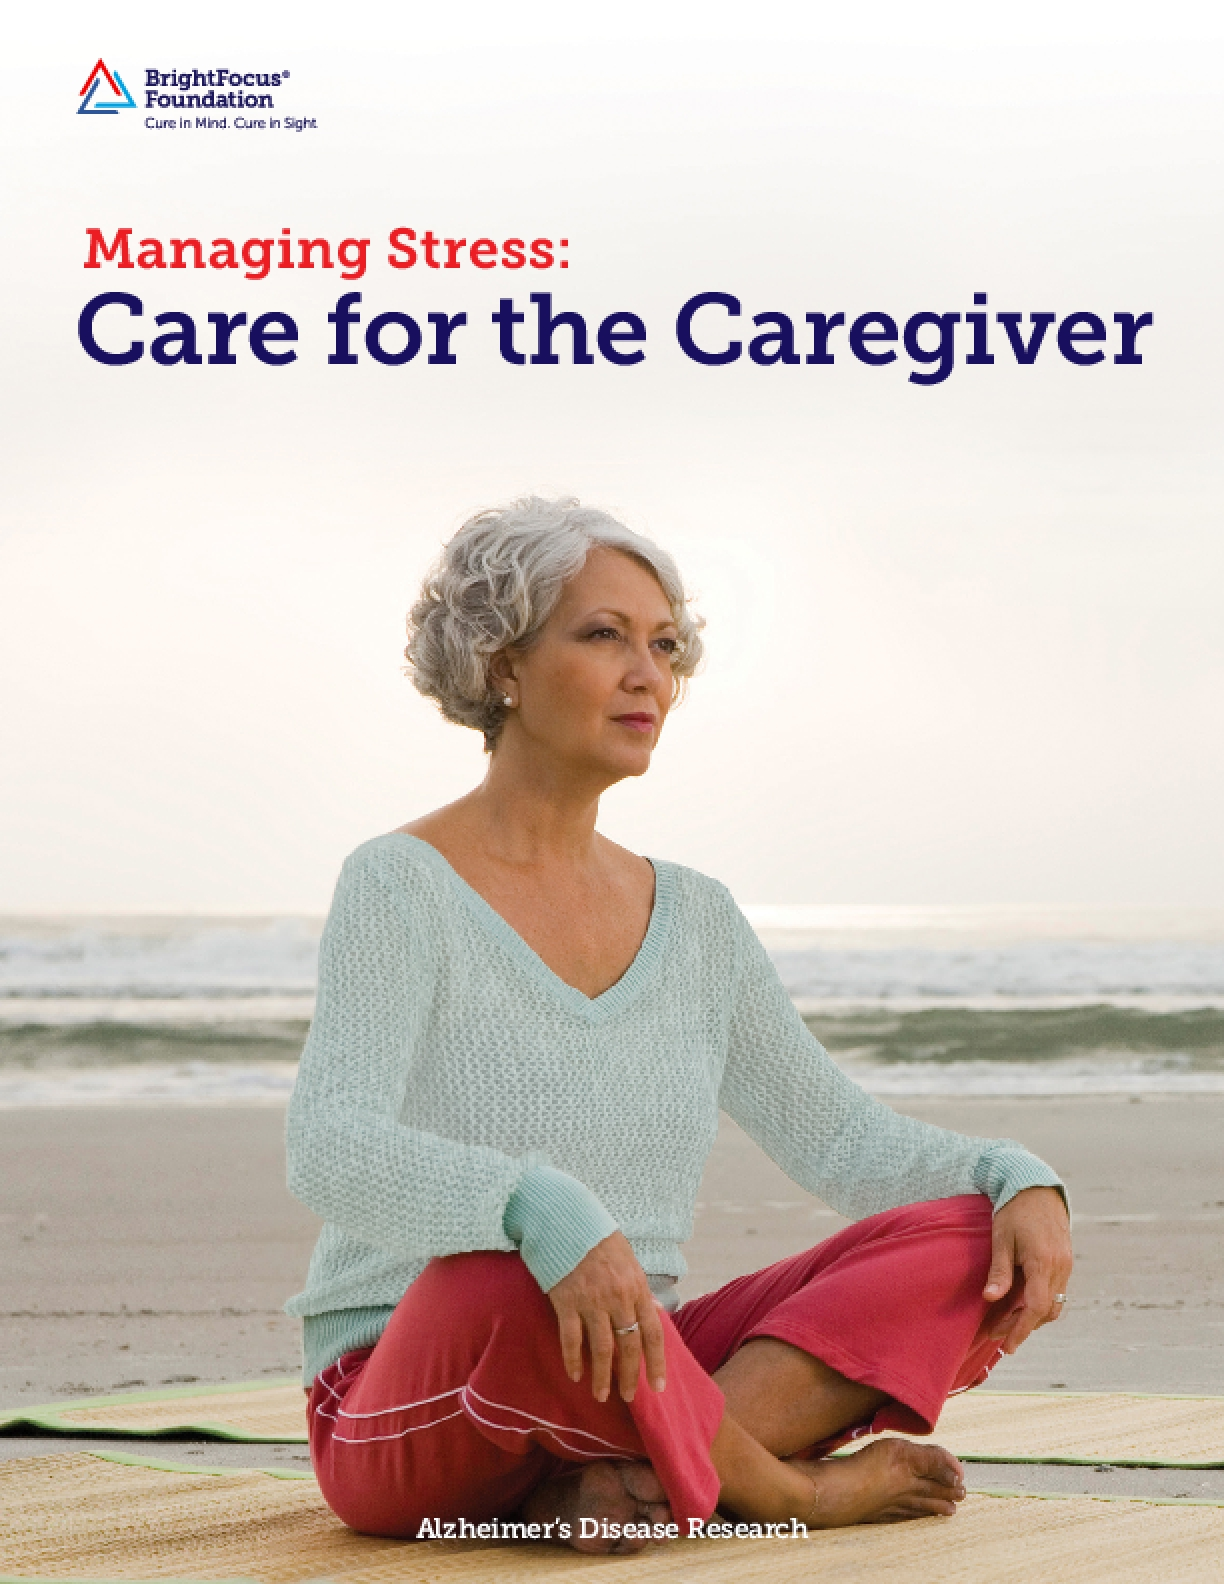 Managing Stress: Care for the Caregiver